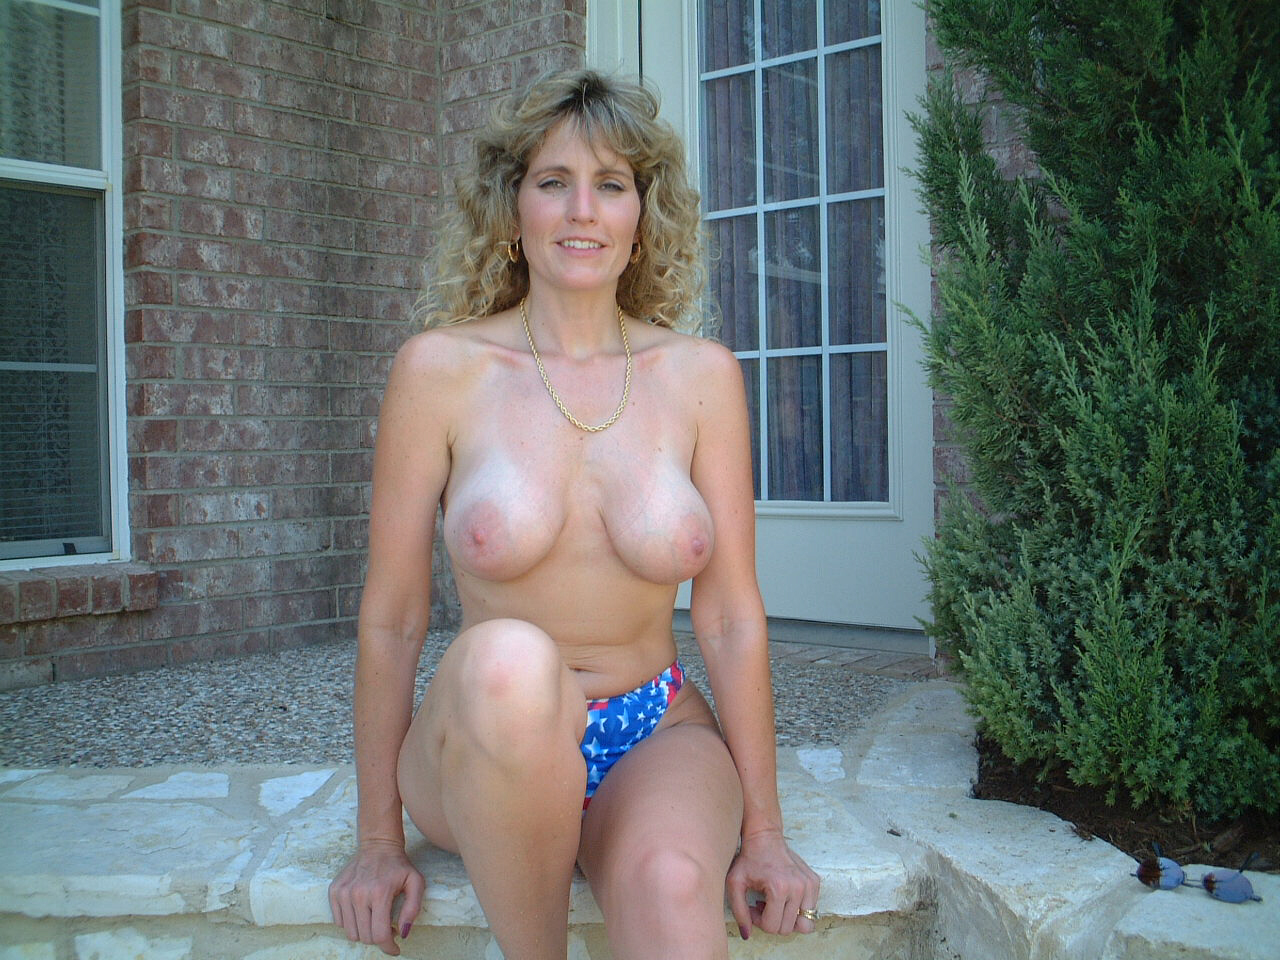 women hot bodies nude